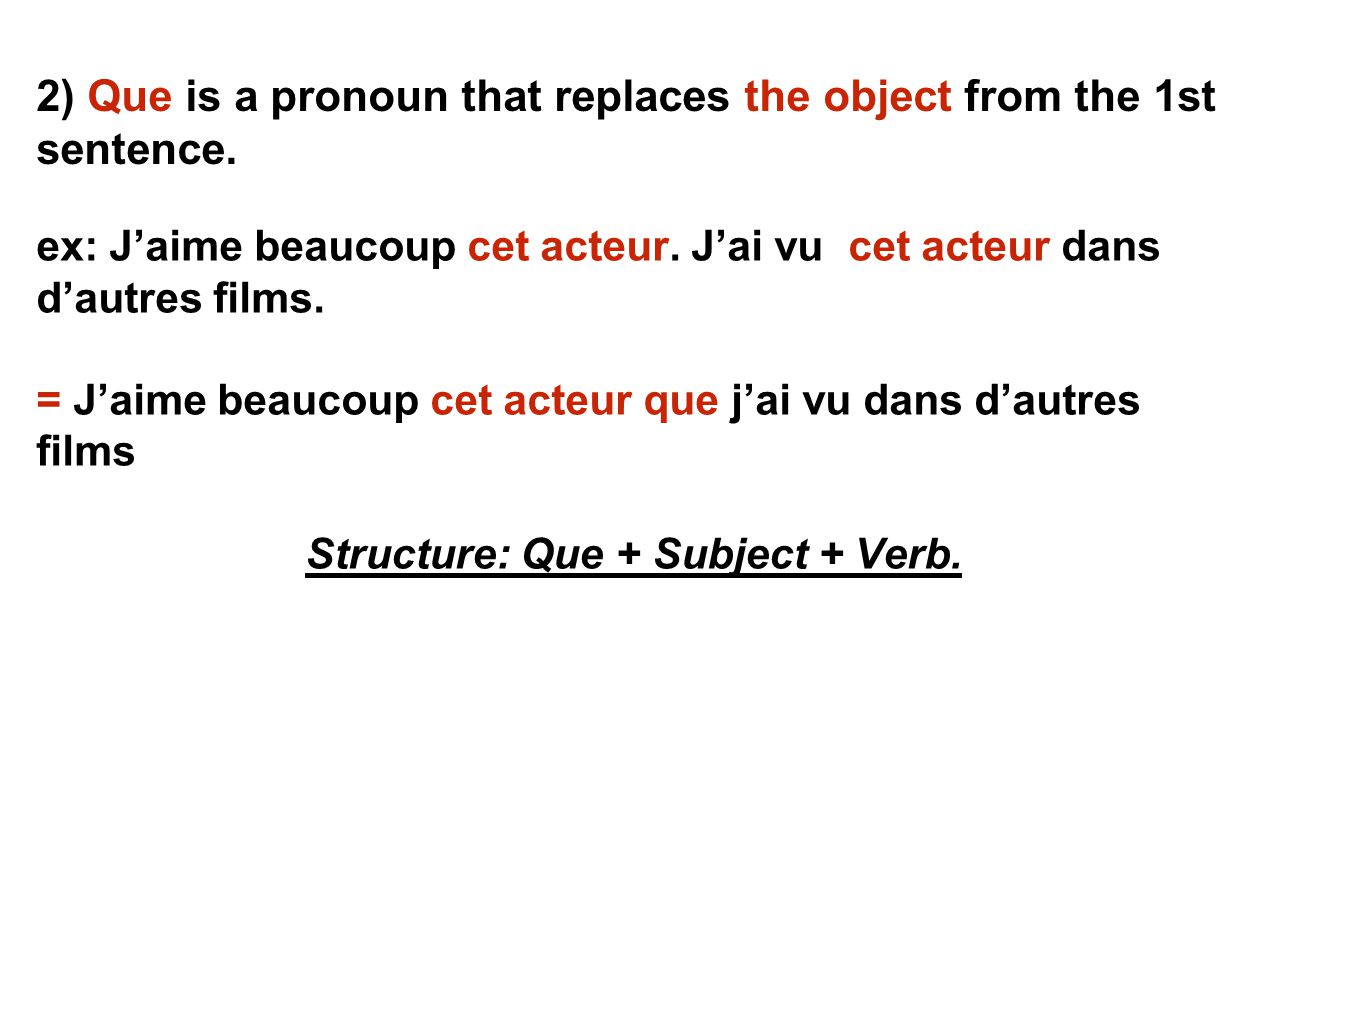 2) Que is a pronoun that replaces the object from the 1st sentence.